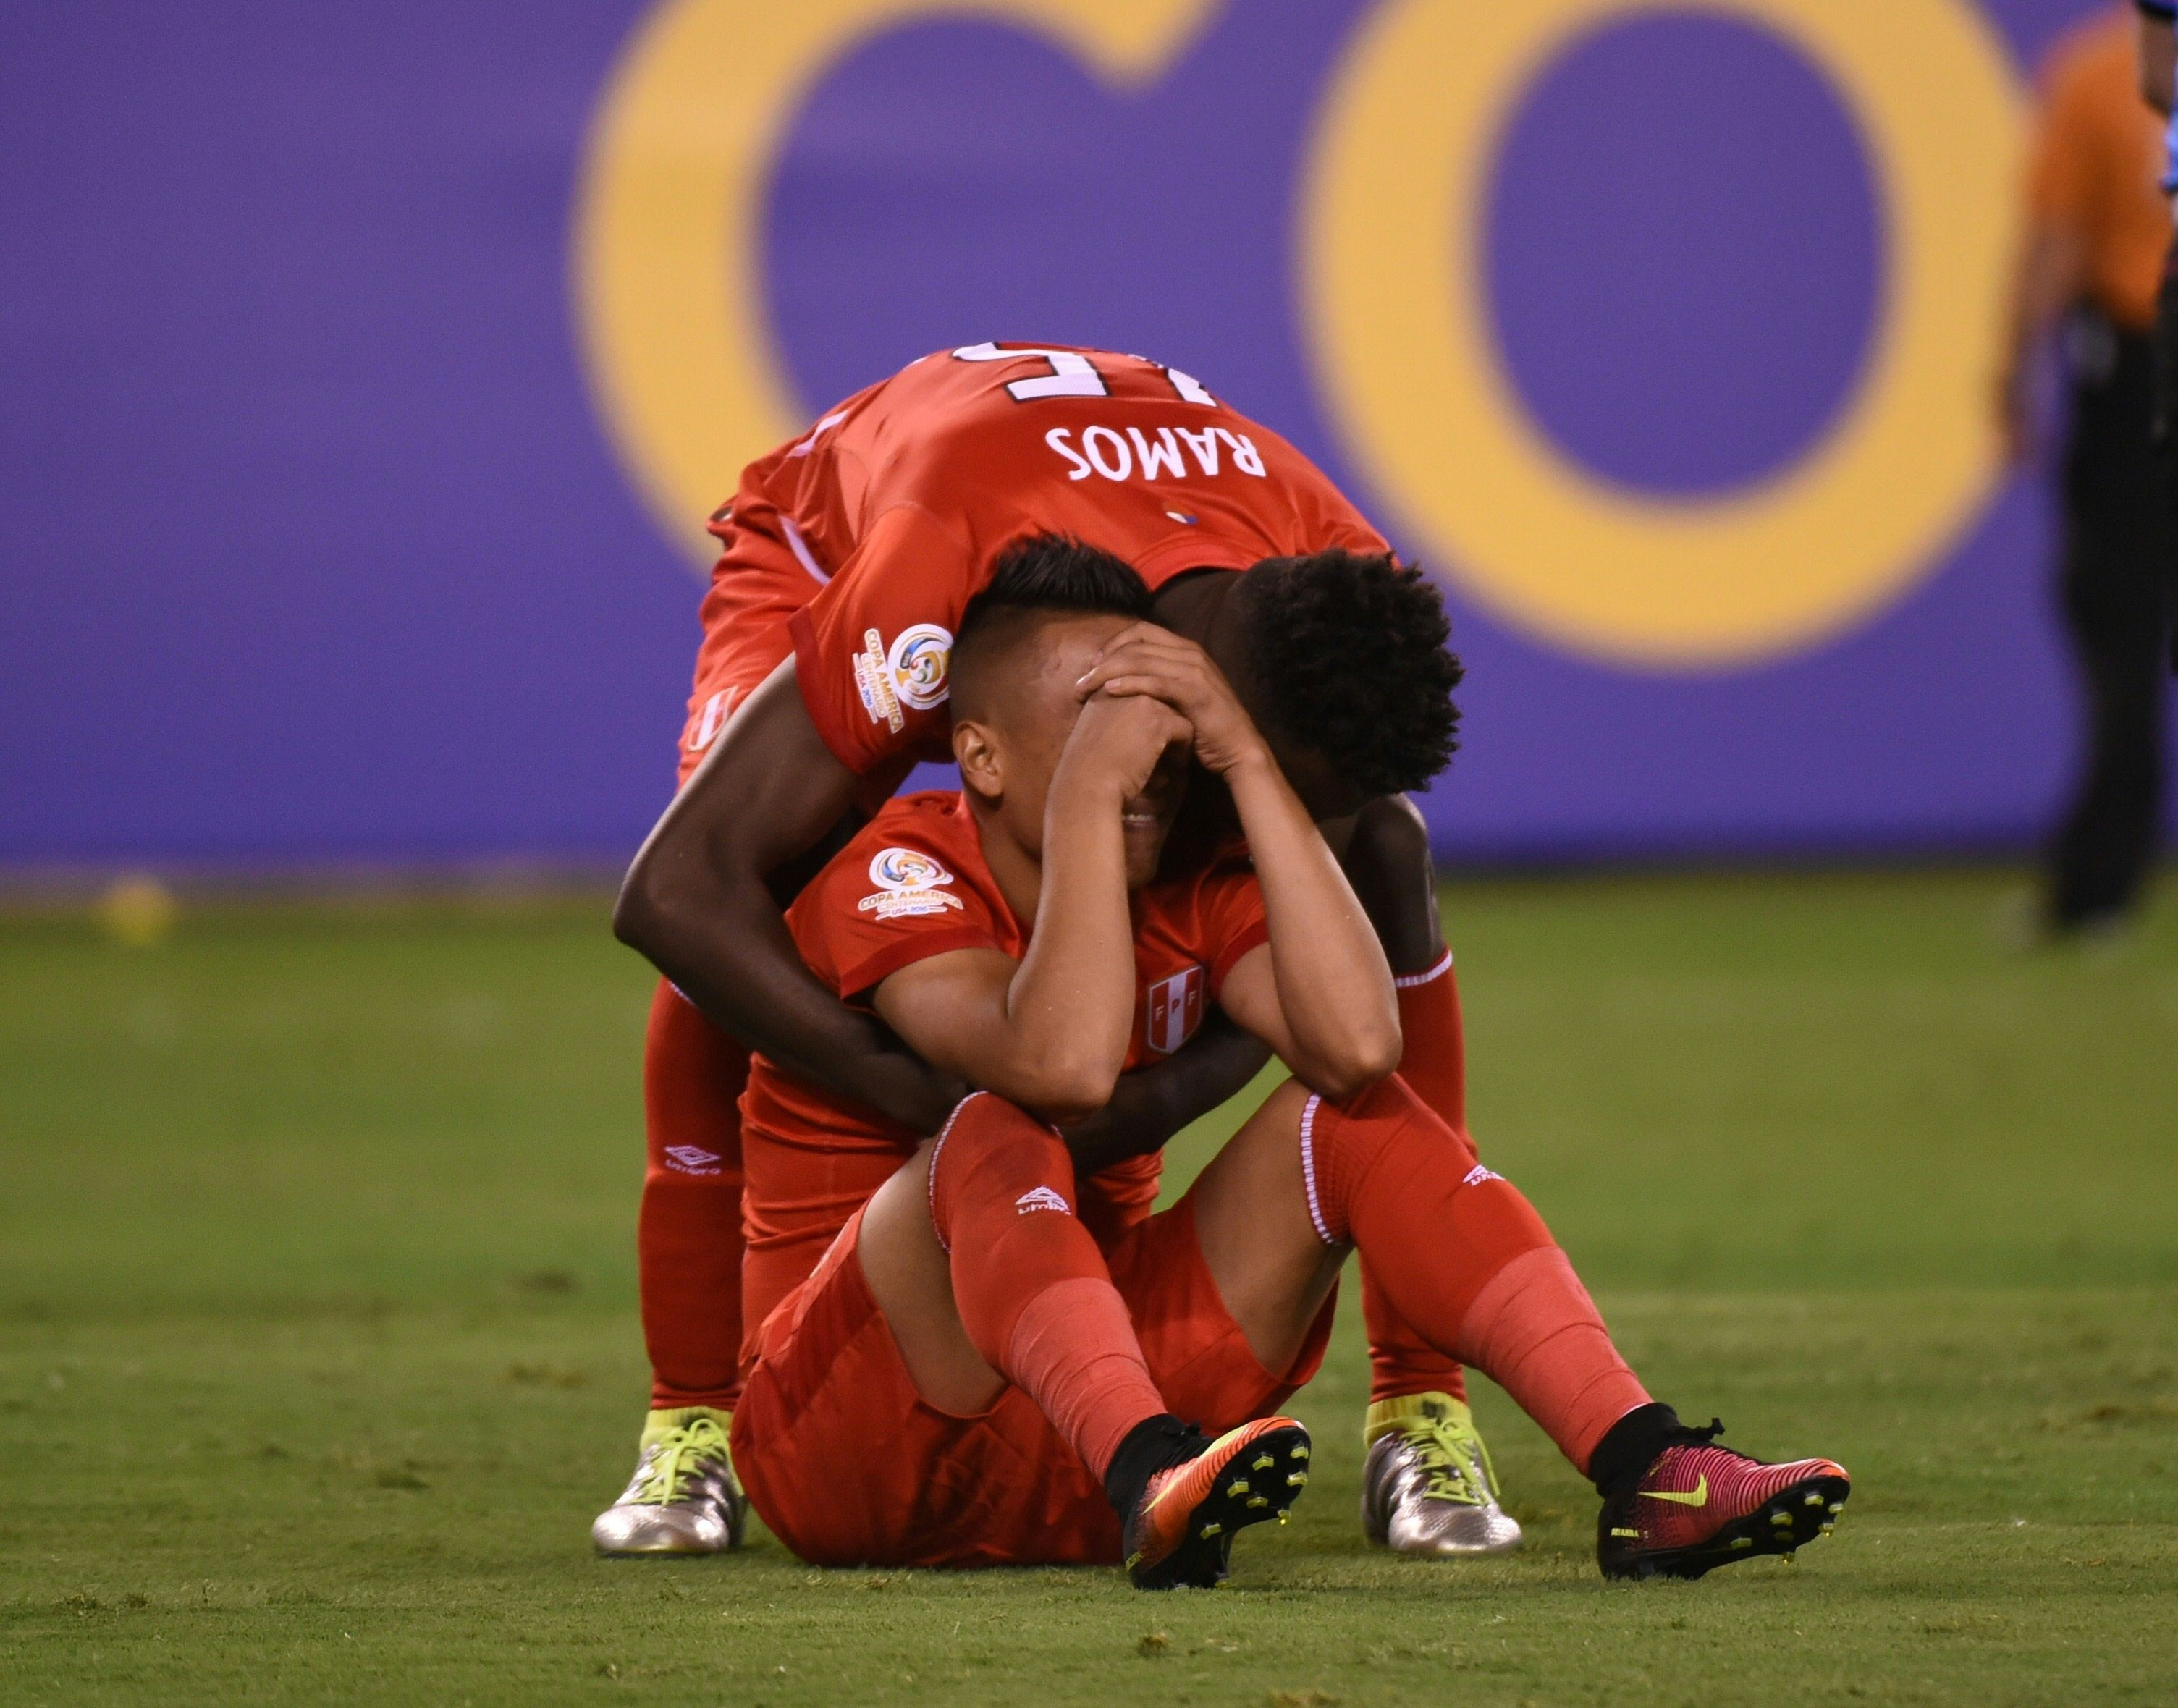 Peru's Christian Cueva (sitting on ground) is comforted by teammate C